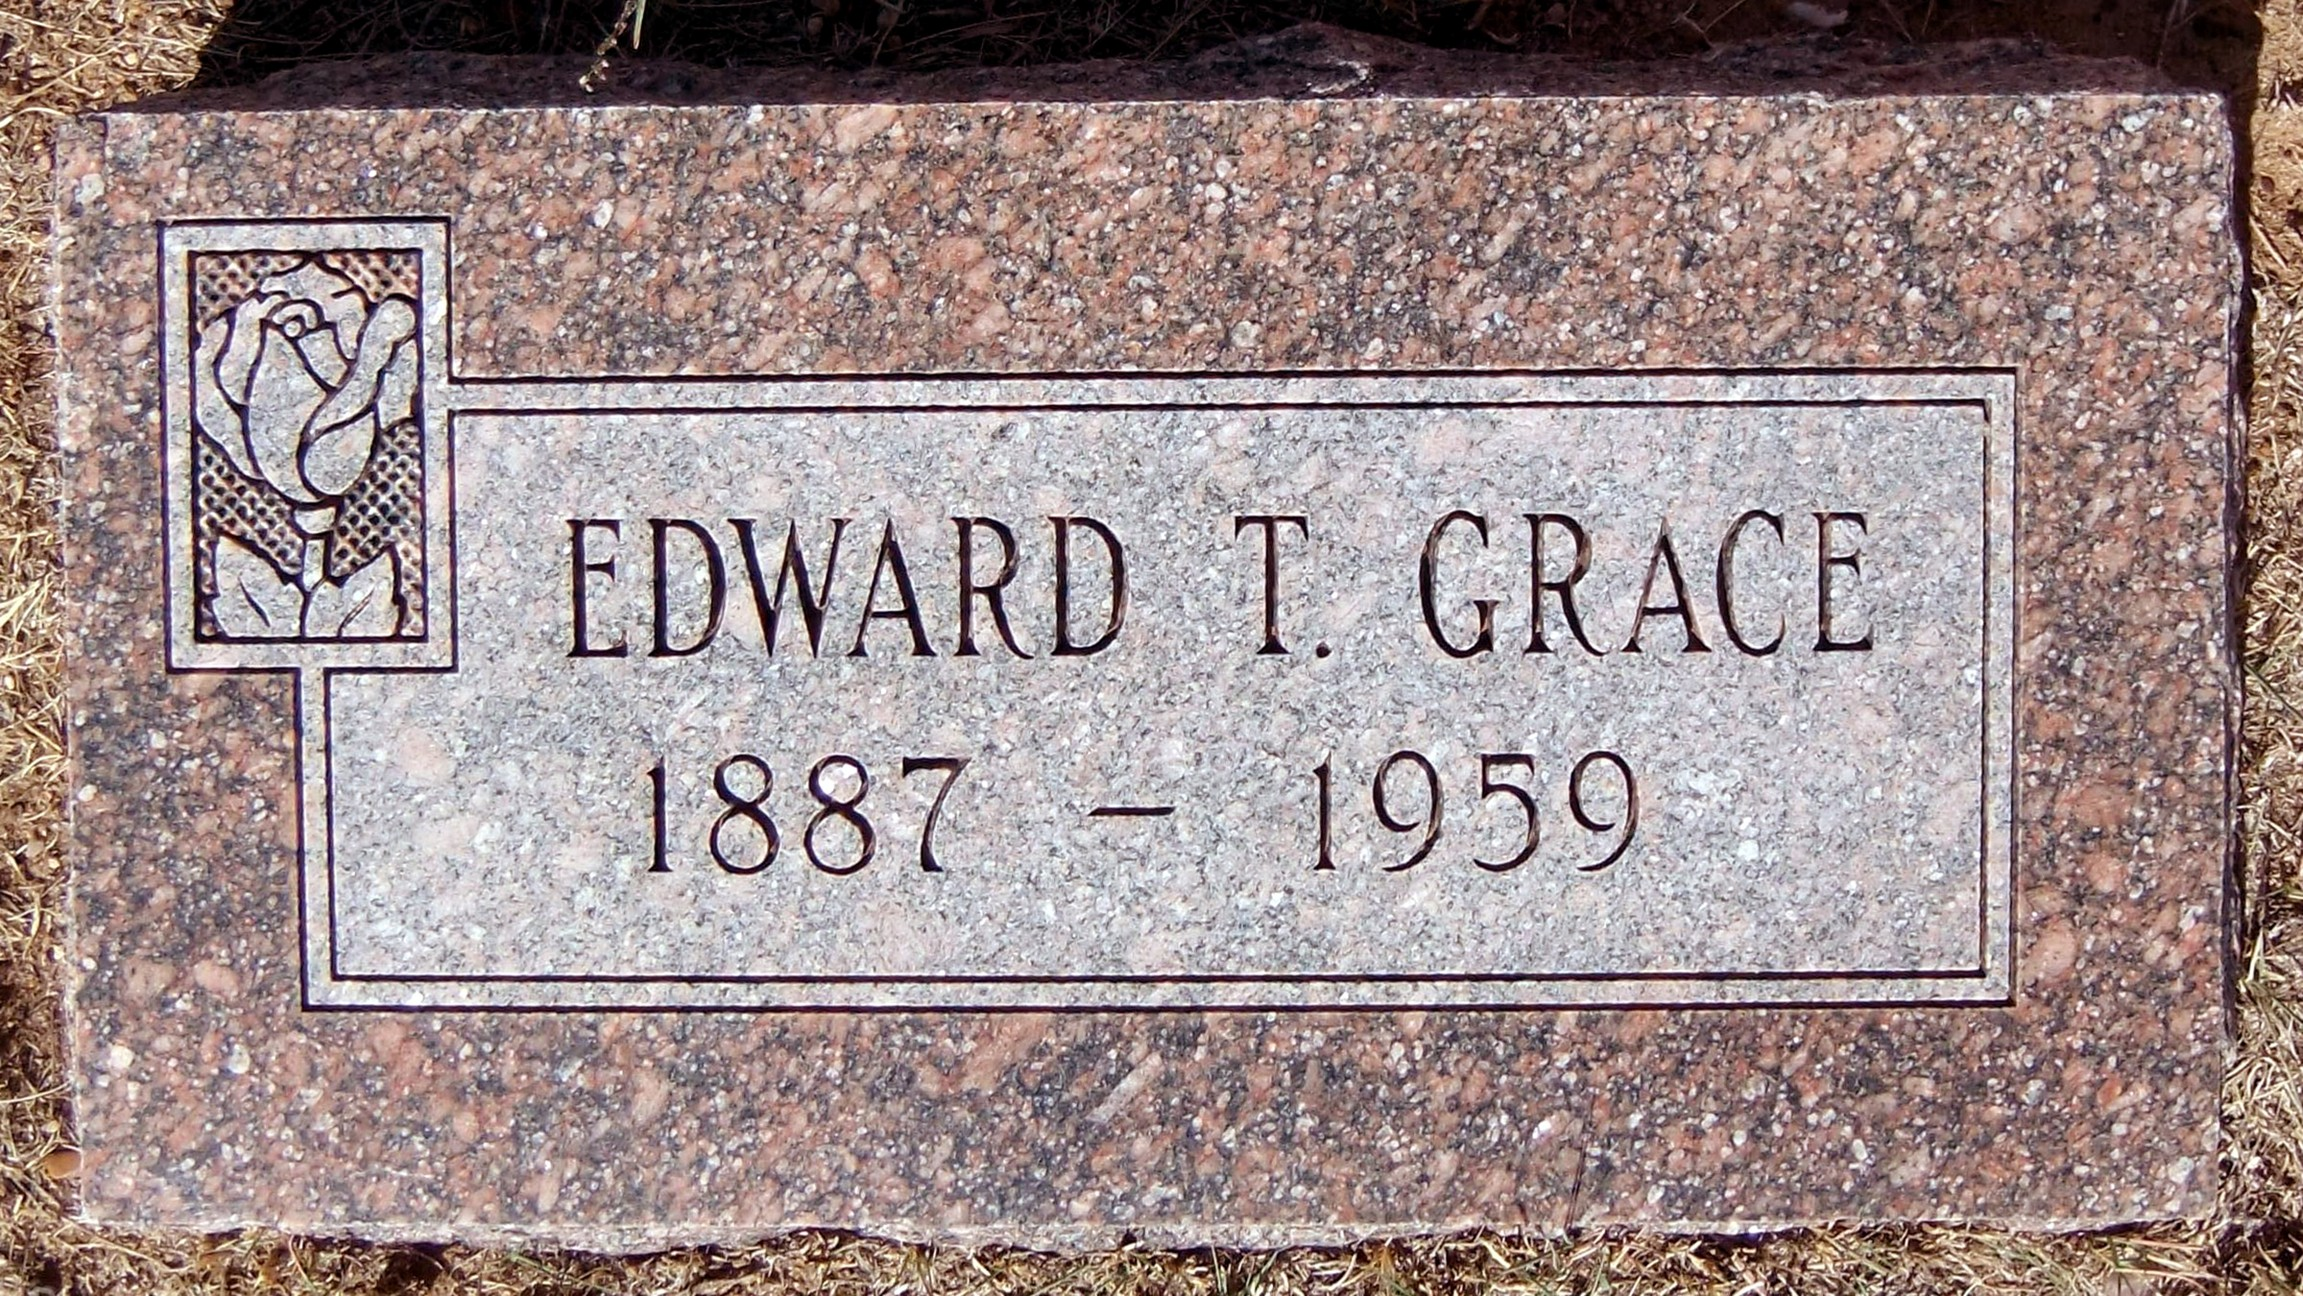 Thomas Edward Grace